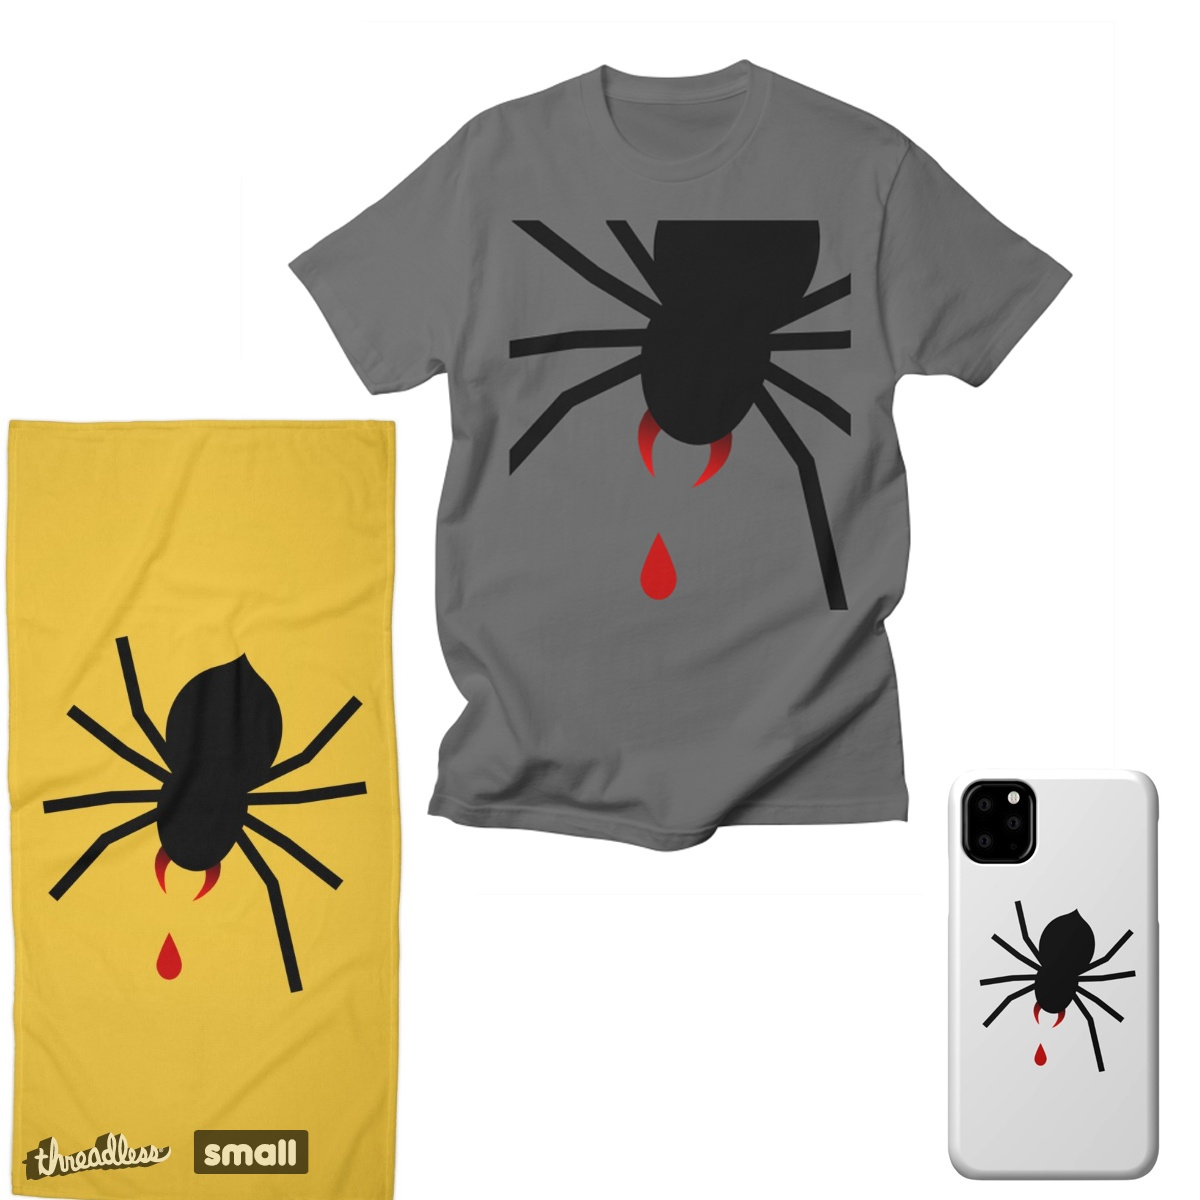 The big spider, a cool t-shirt design